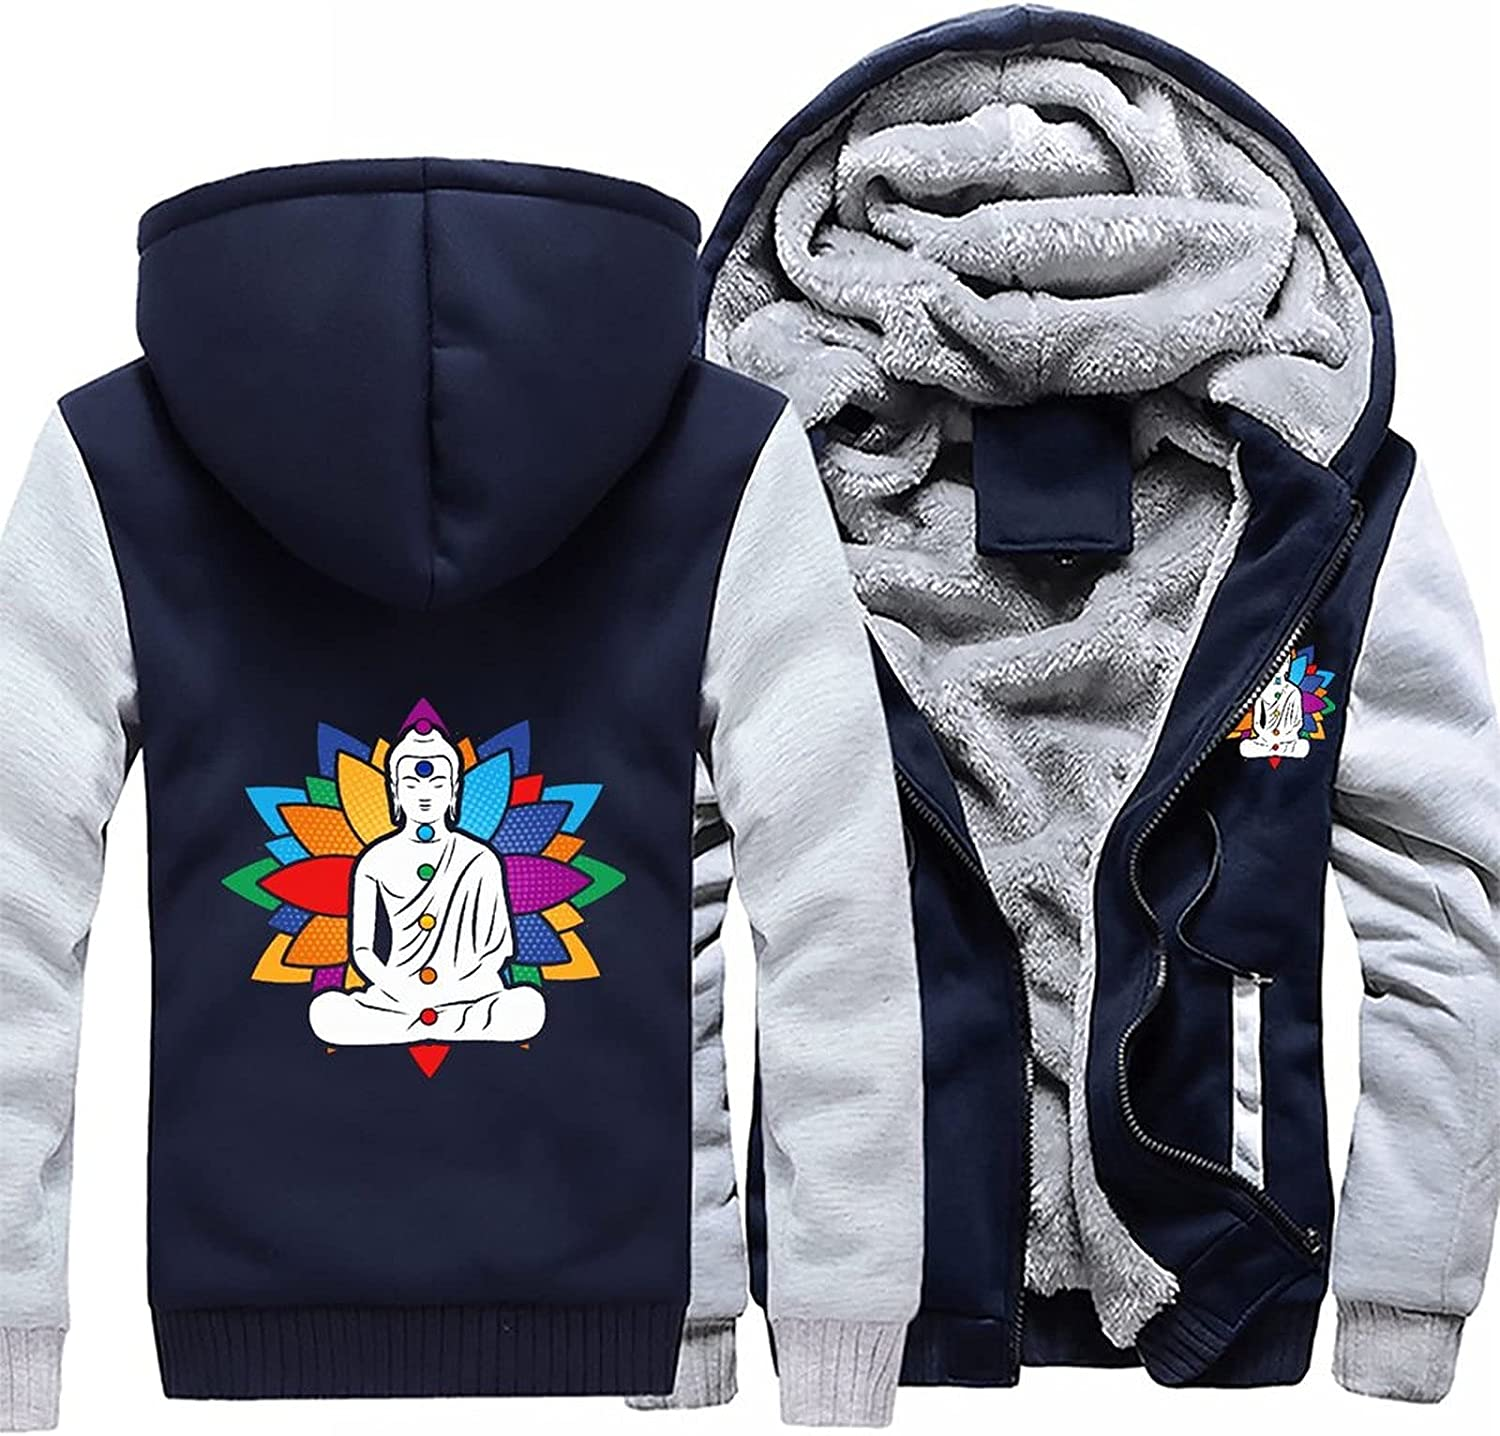 Buddha Chakra Low price Meditation Men's Pullover Ho OFFicial store Winter Fleece Workout